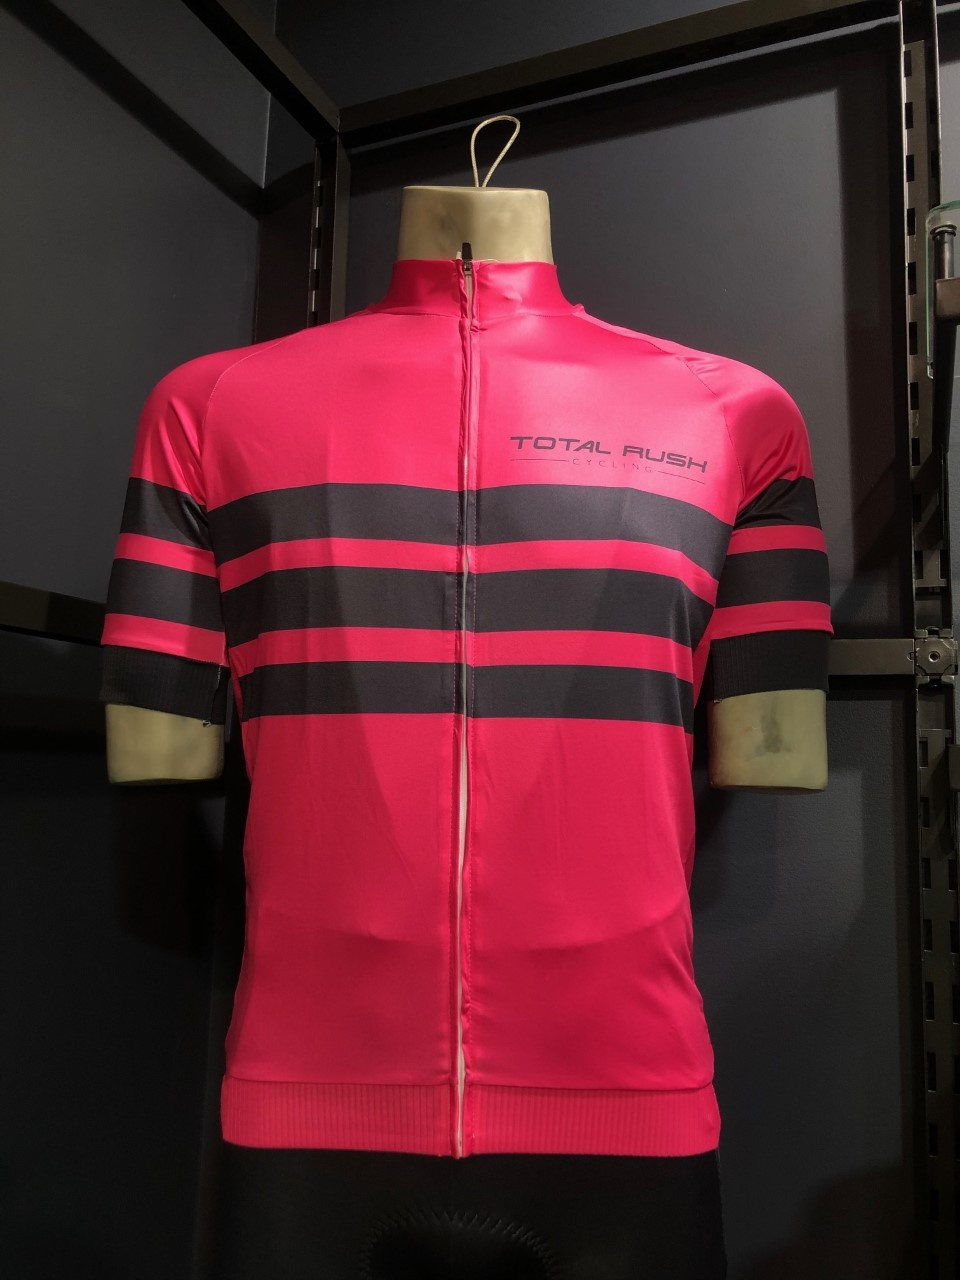 TR TEAM JERSEY S/E 'RIDE IT' MED SIZE